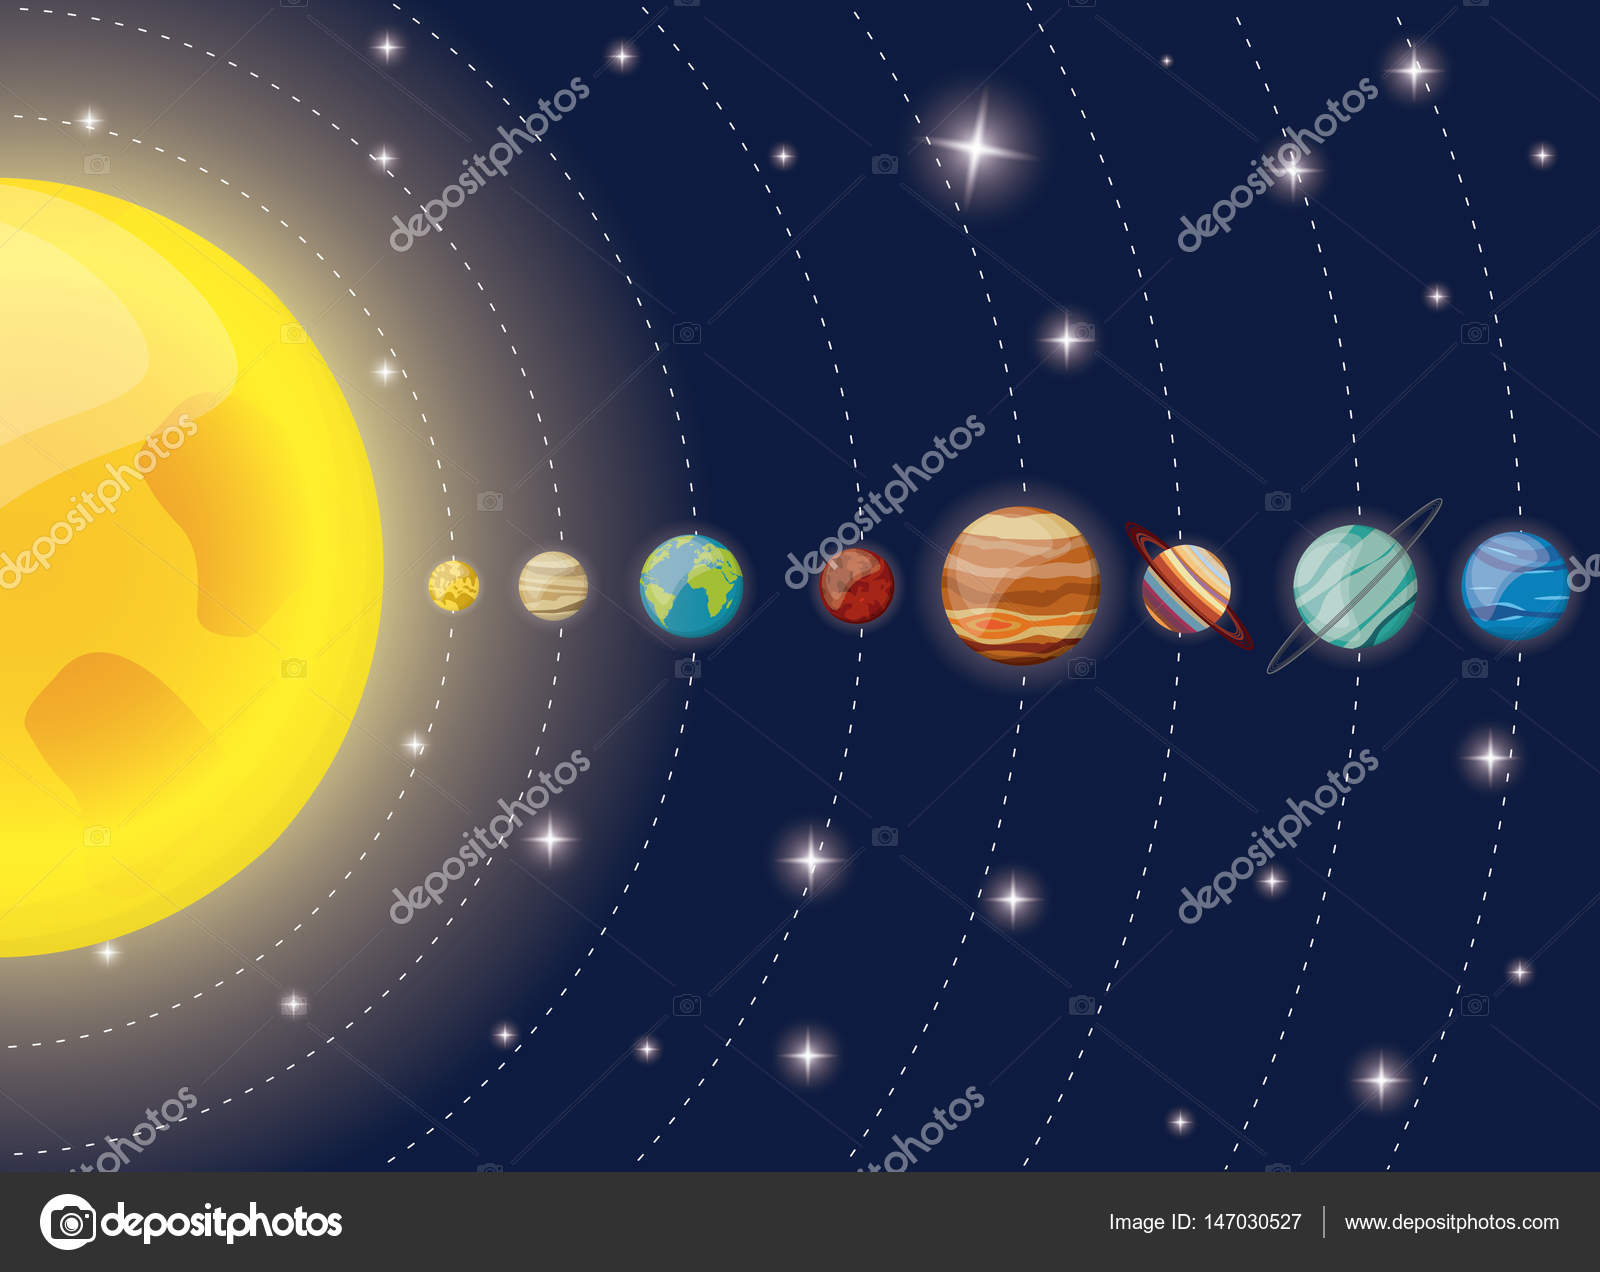 Diagram of the solar system basic guide wiring diagram solar system planets sun diagram stock vector jemastock 147030527 rh depositphotos com diagram of the solar ccuart Images